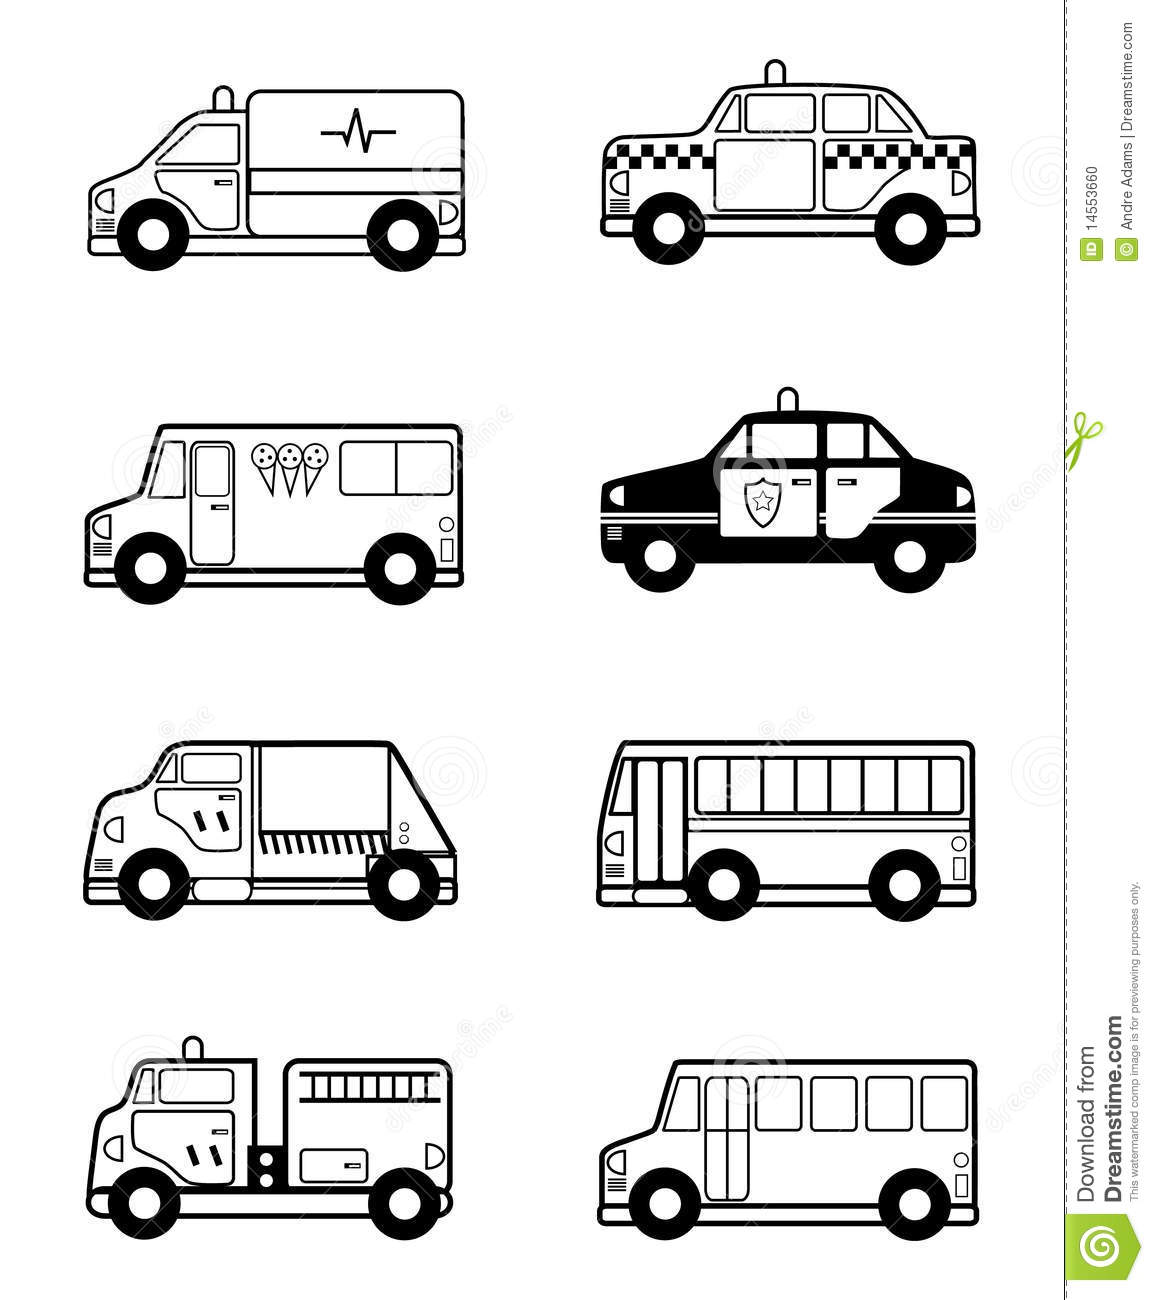 child toy vehicles outline stock photo